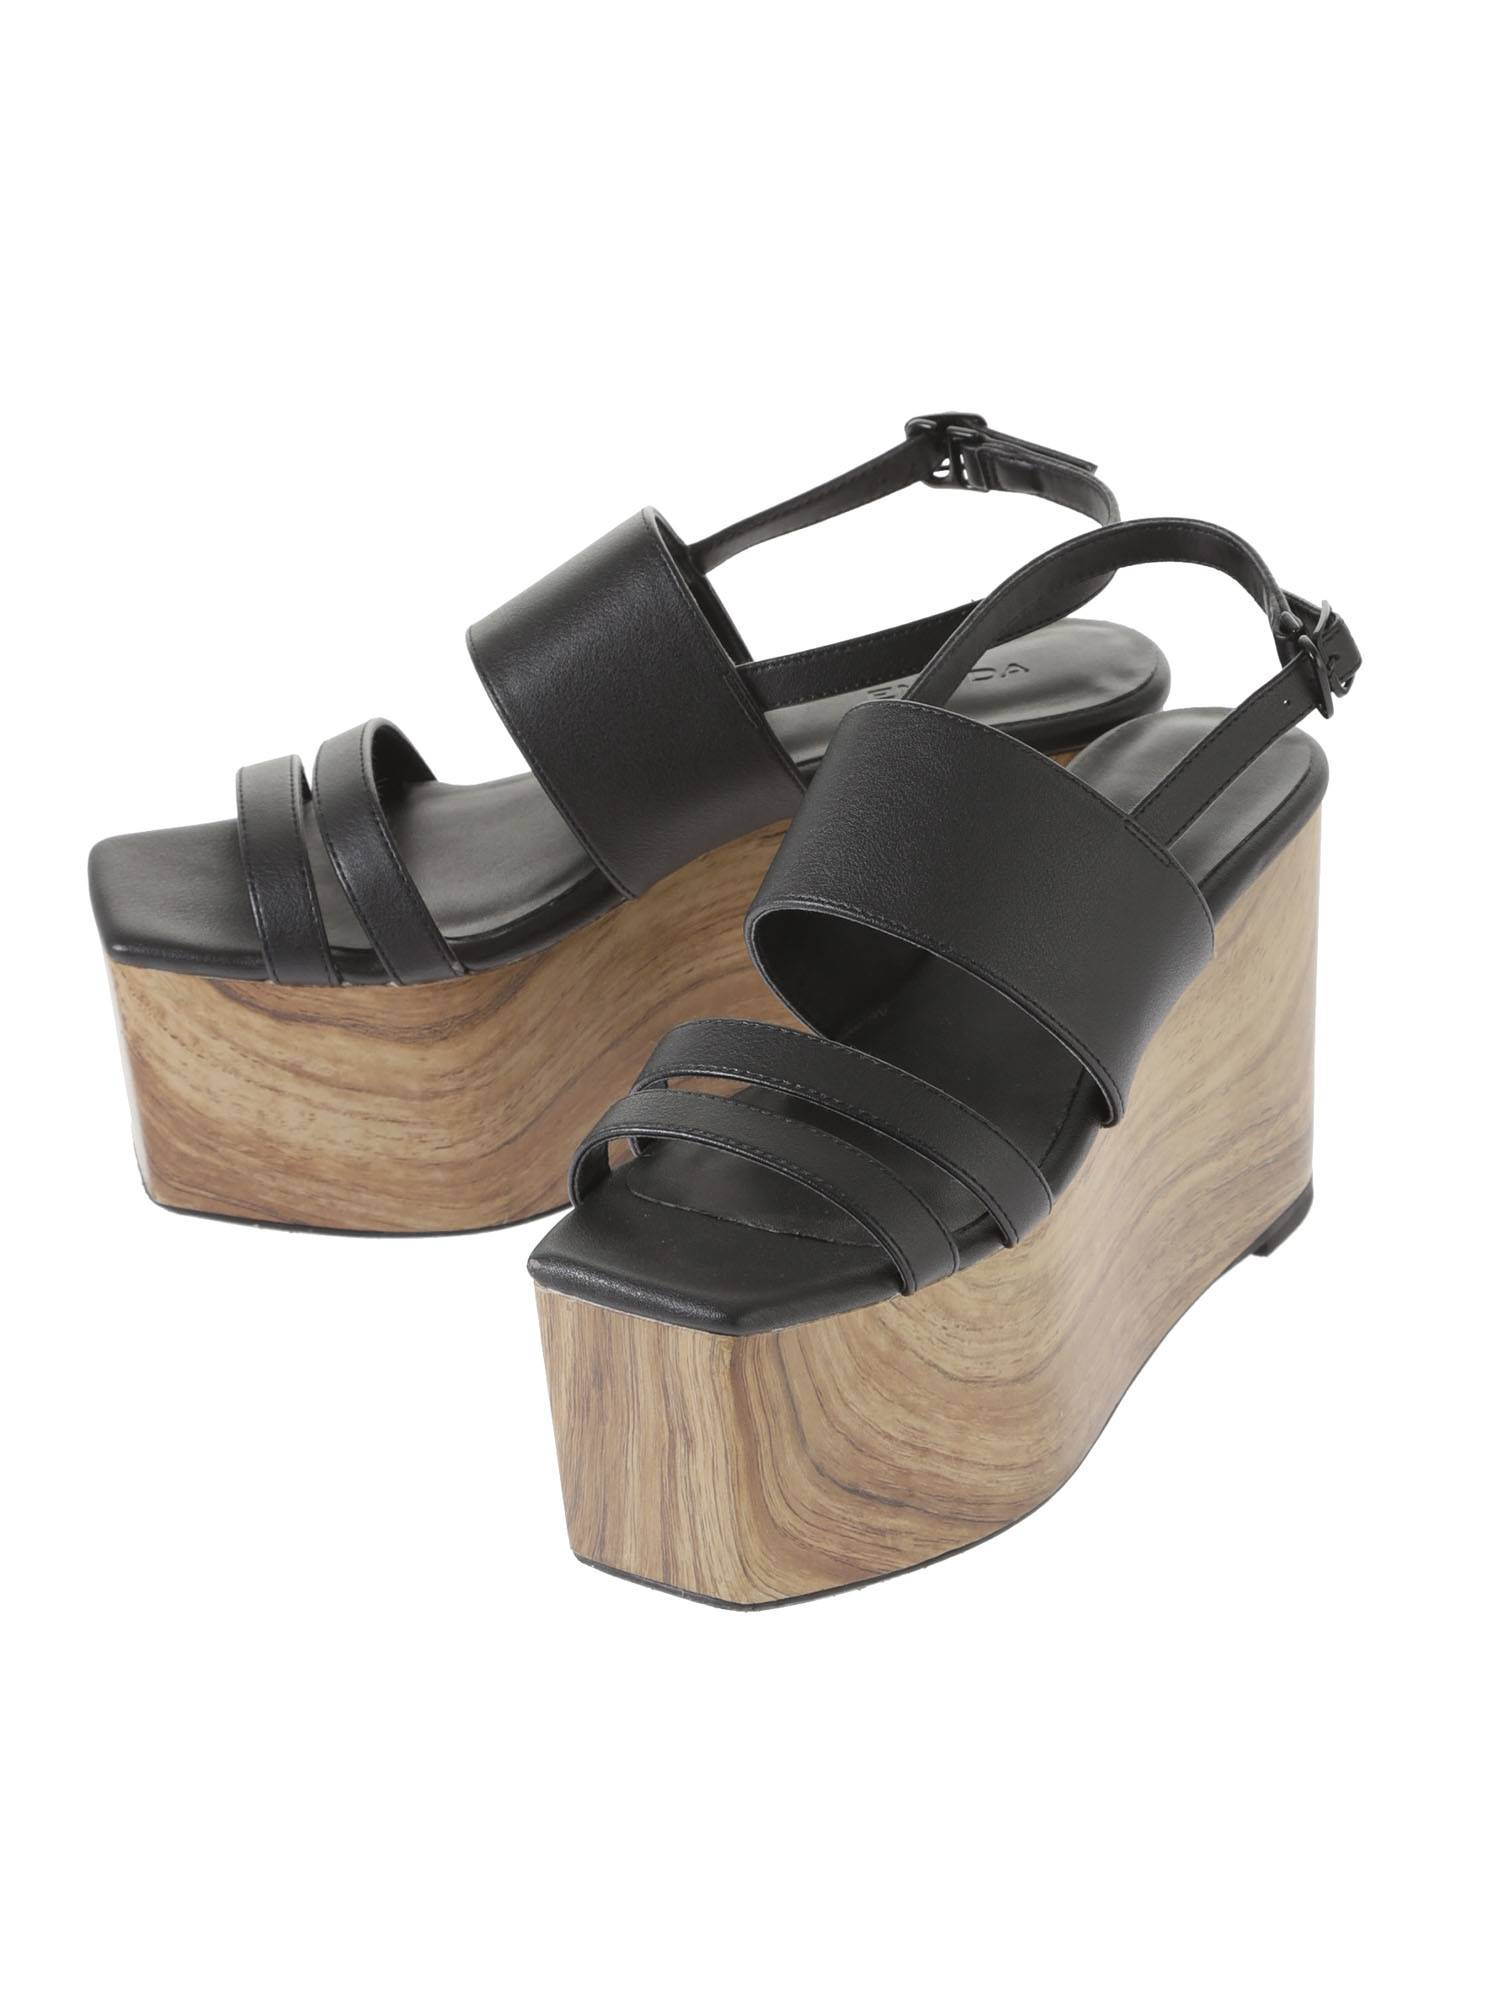 Marble Wood bulky sandals